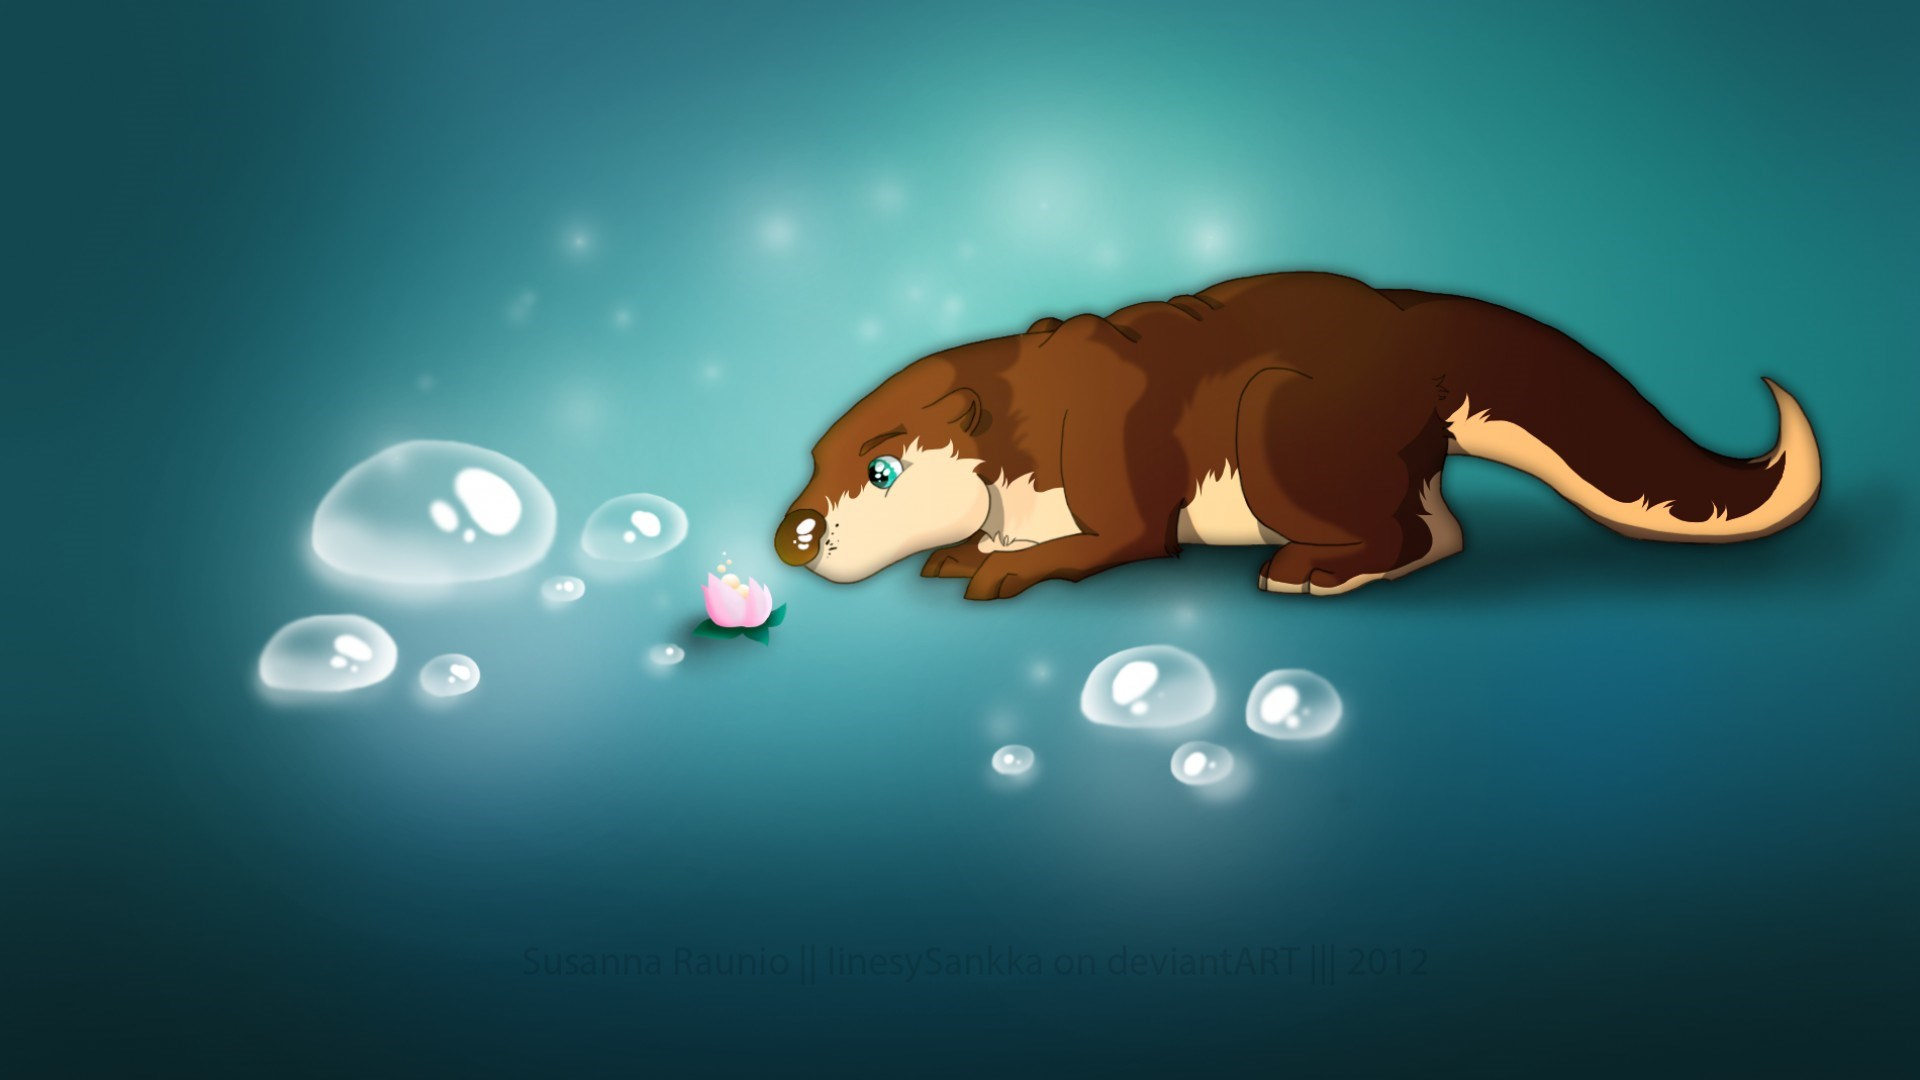 Flower Bubbles Otter Artwork